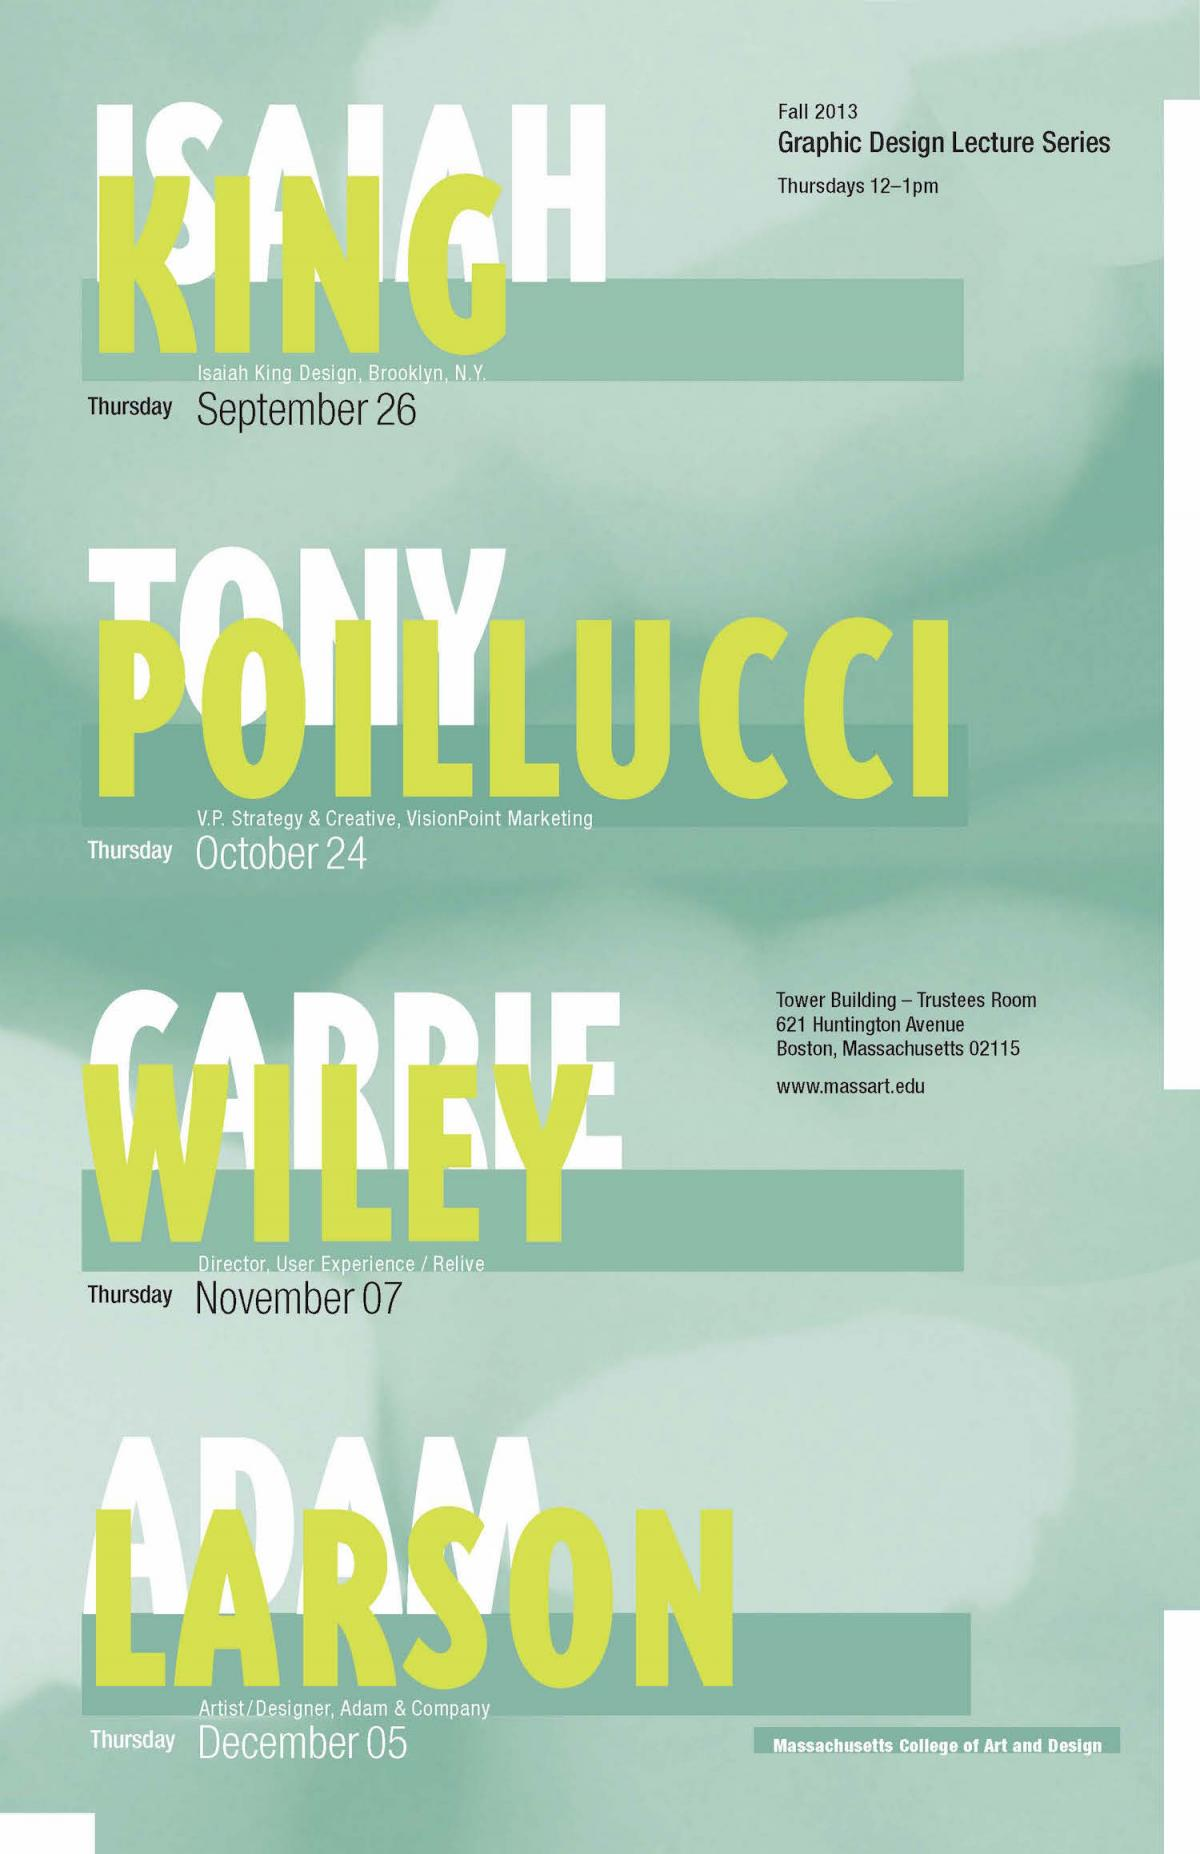 Graphic Design Lecture Series Poster Massart